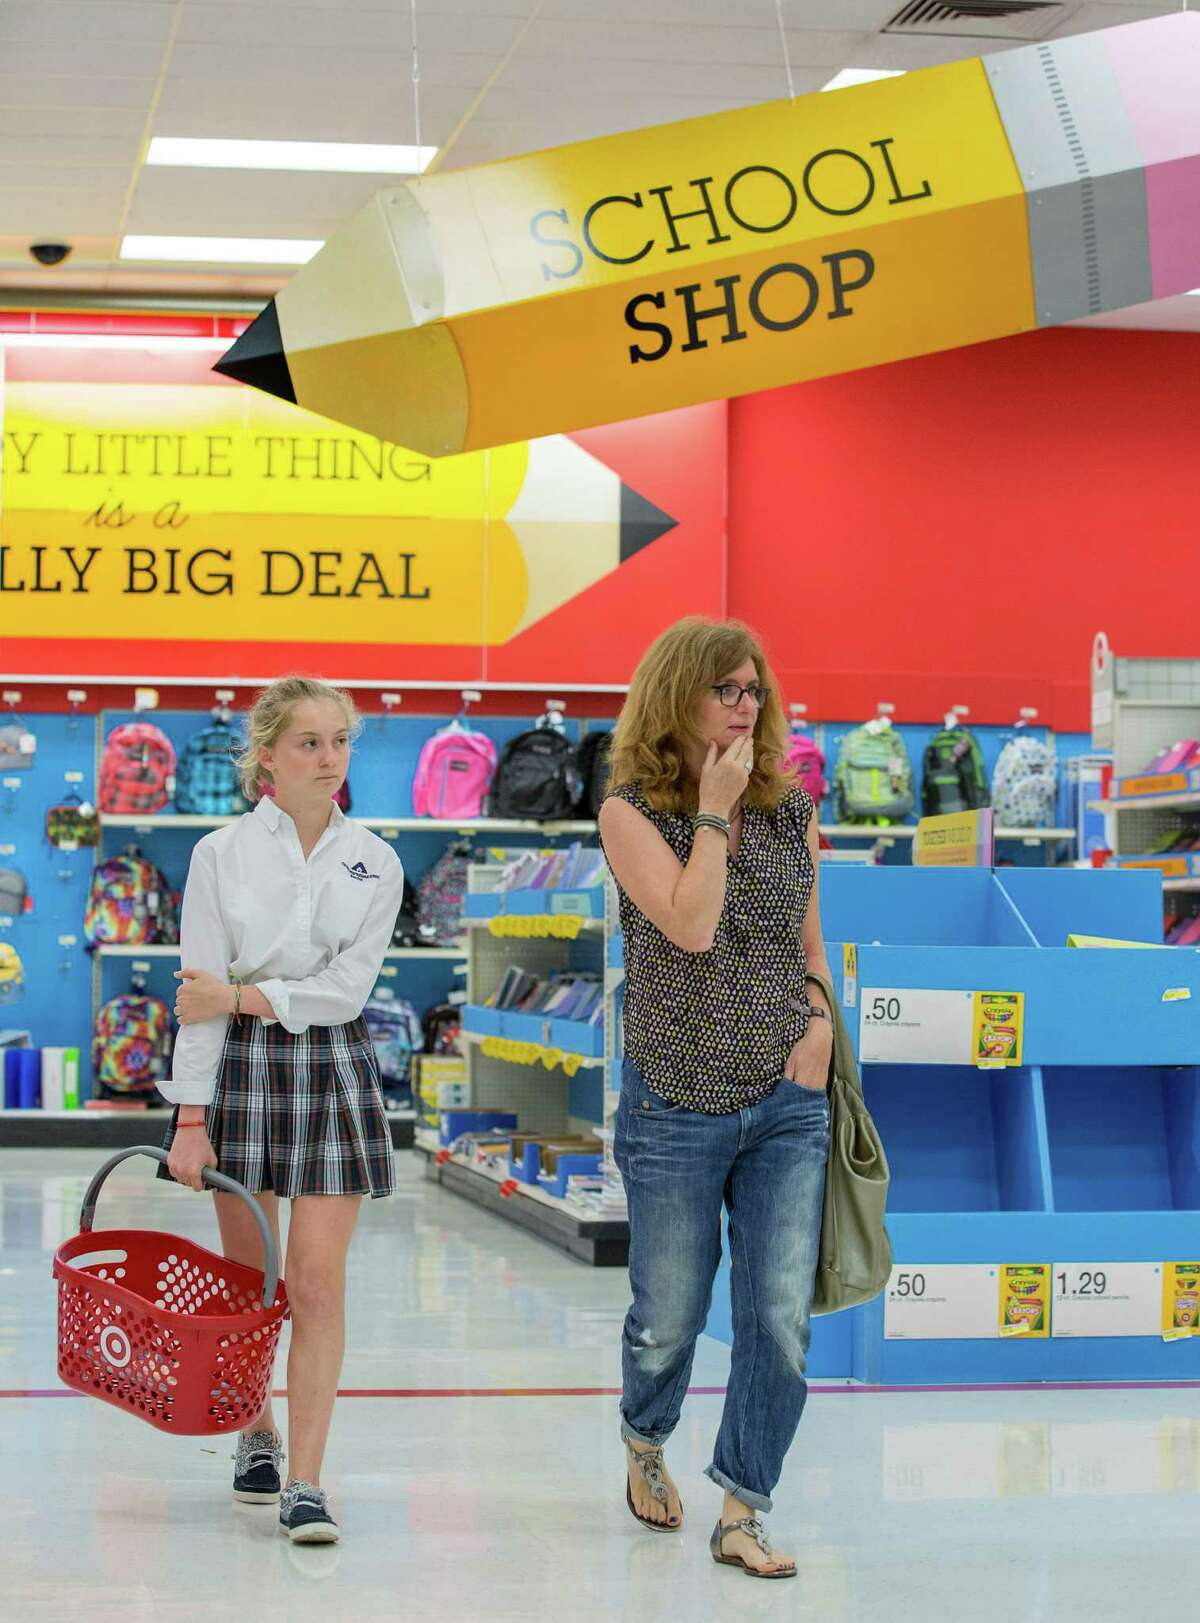 Target store, 4323 San Felipe. Retailers are expecting lots of back-to-school shopping over Labor Day Weekend. Mom Gino Coulom and 13-year-old Stella Coulom finish up their shopping for school supplies. Wednesday August 27, 2014 (Craig H. Hartley/For the Chronicle)